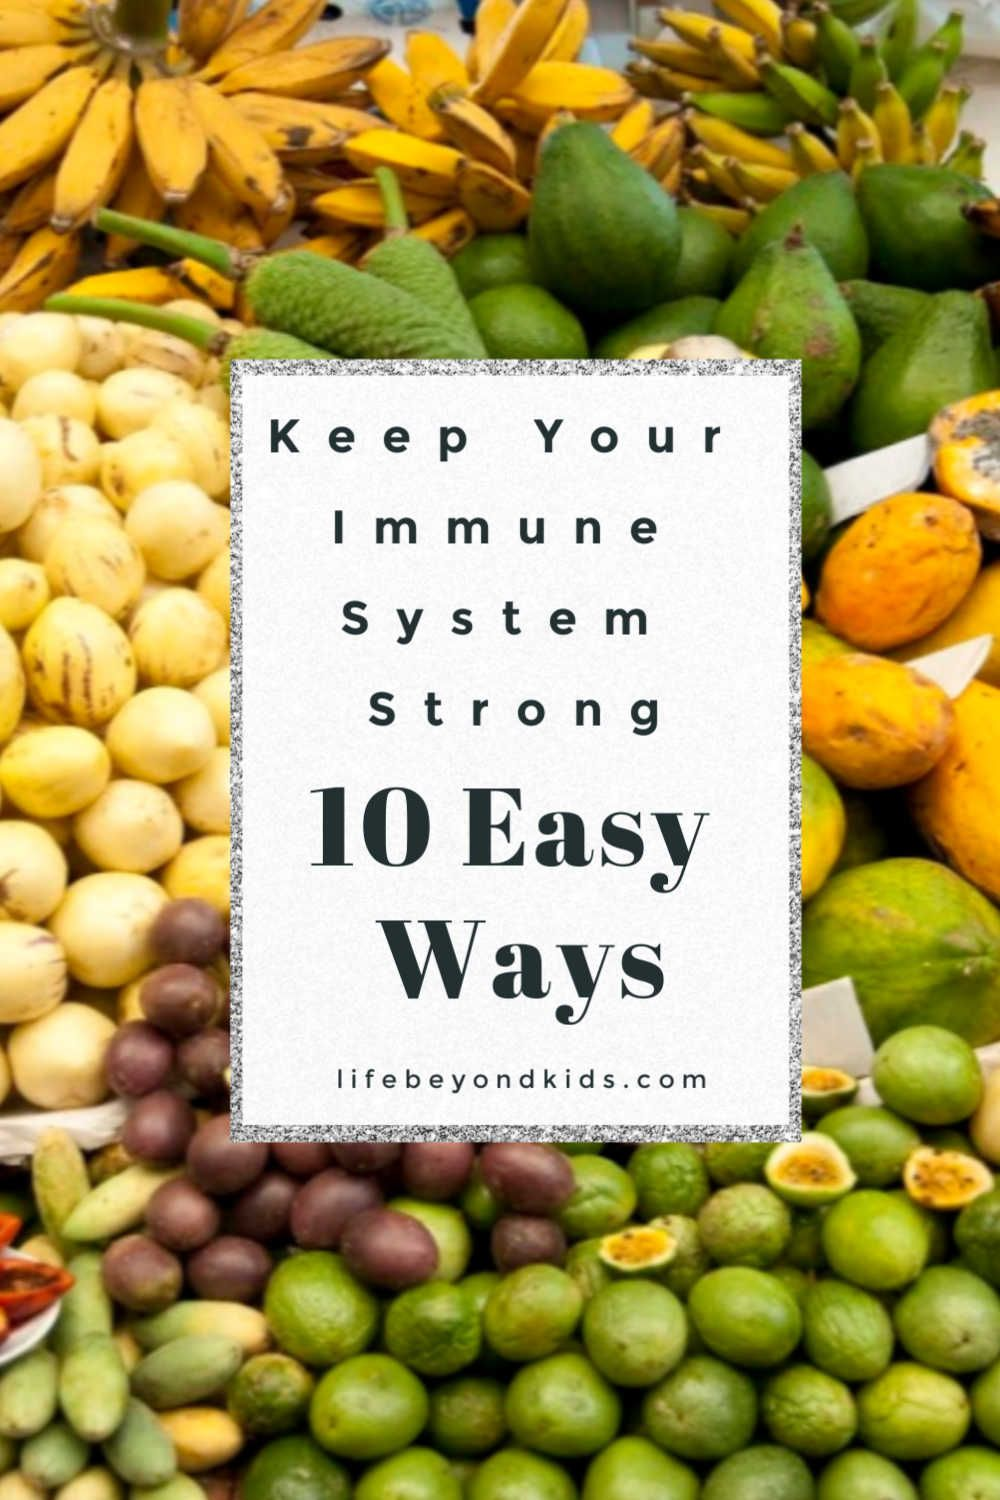 10 Ways To Keep Your Immune System Strong In 2020 Immune System